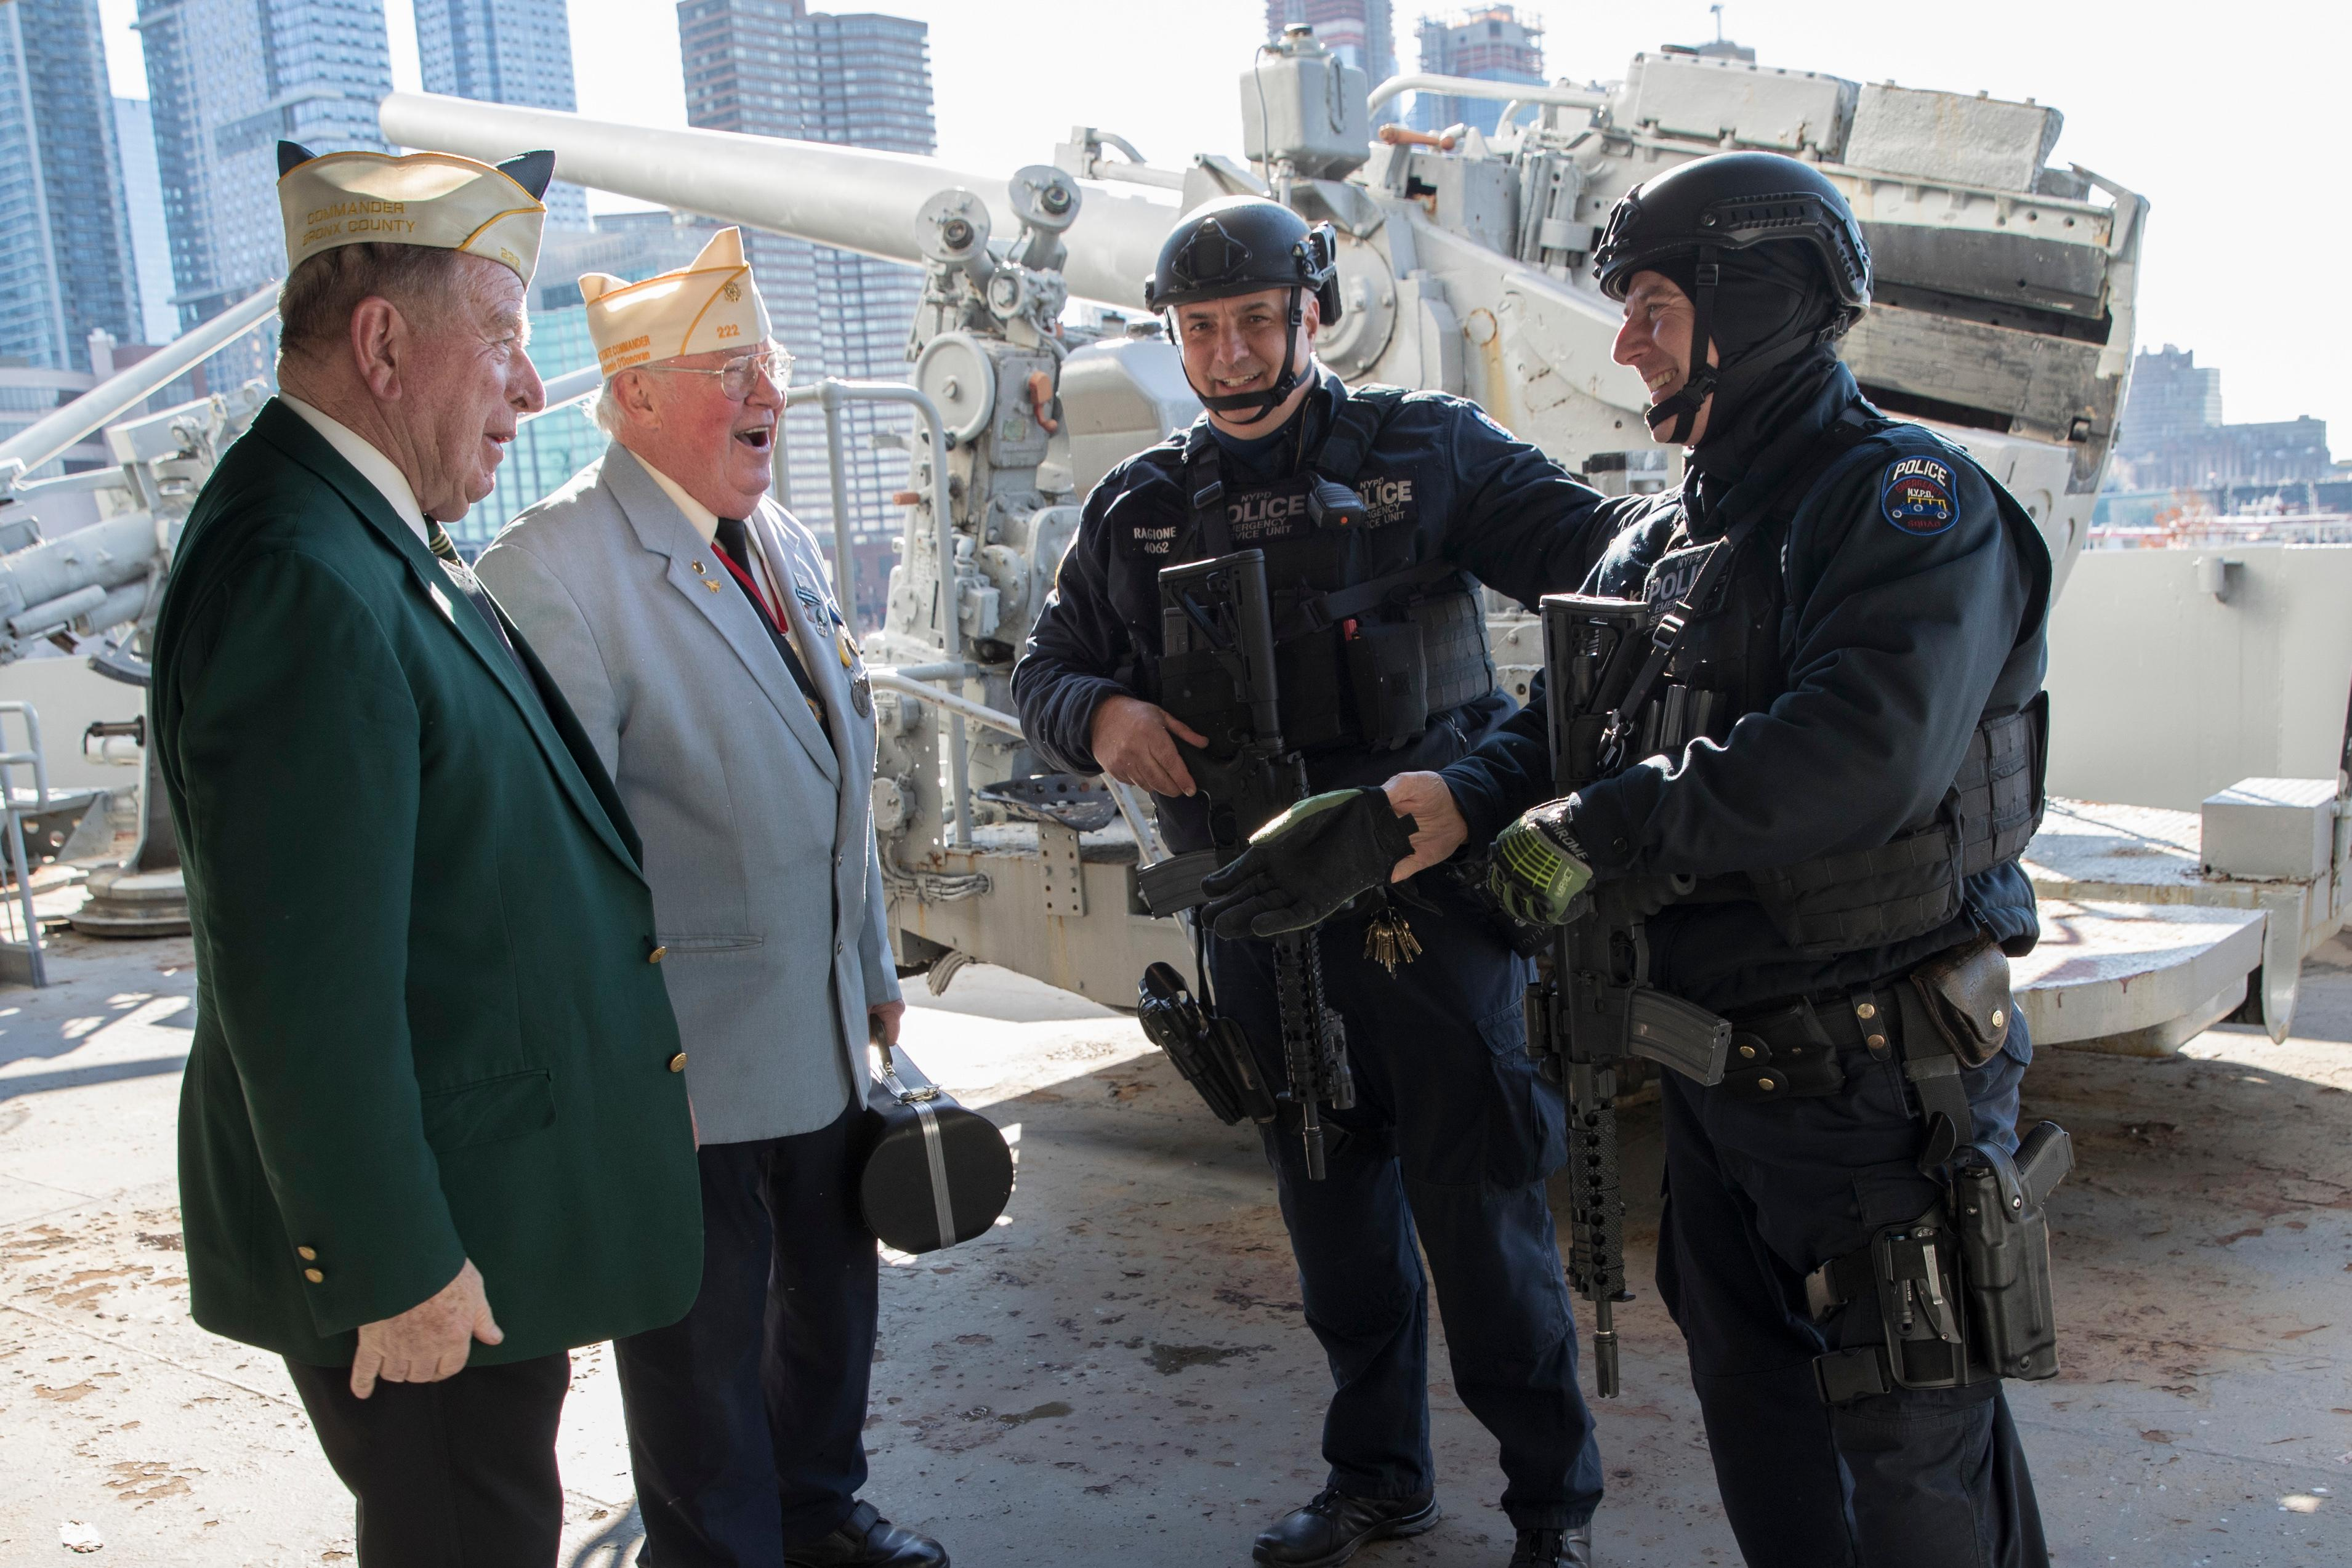 Veterans John Dunleavy, left, and Jim Mullarkey, second from left, speak to heavily armed police officers during a ceremony commemorating the 76th anniversary of the Dec. 7, 1941 Japanese attack on Pearl Harbor, Thursday, Dec. 7, 2017, on board the Intrepid Sea, Air & Space Museum in New York. (AP Photo/Mary Altaffer)